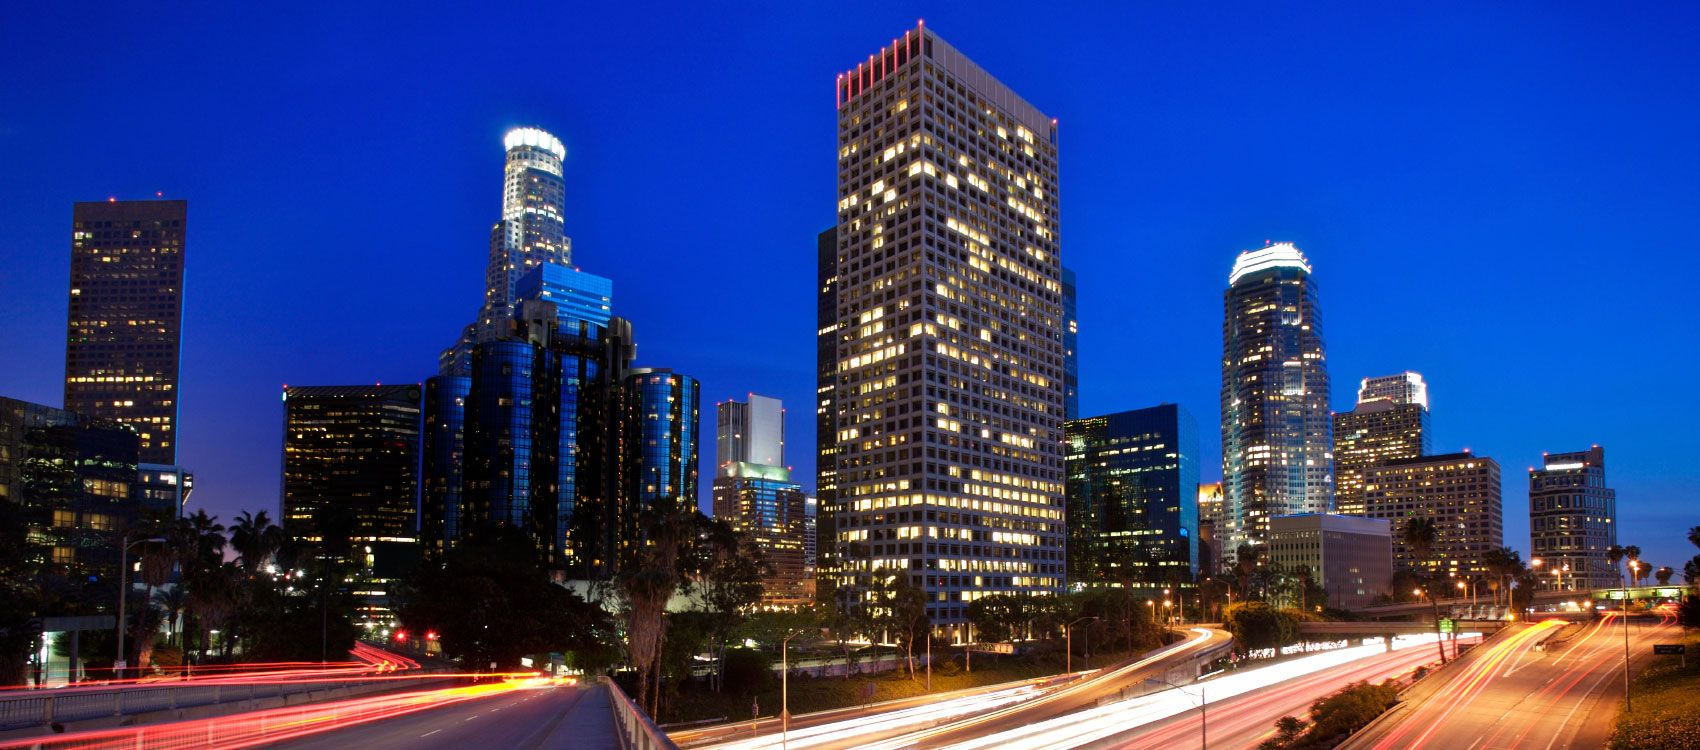 Best boutique hotels in los angeles kimpton hotels los angeles hotels publicscrutiny Choice Image